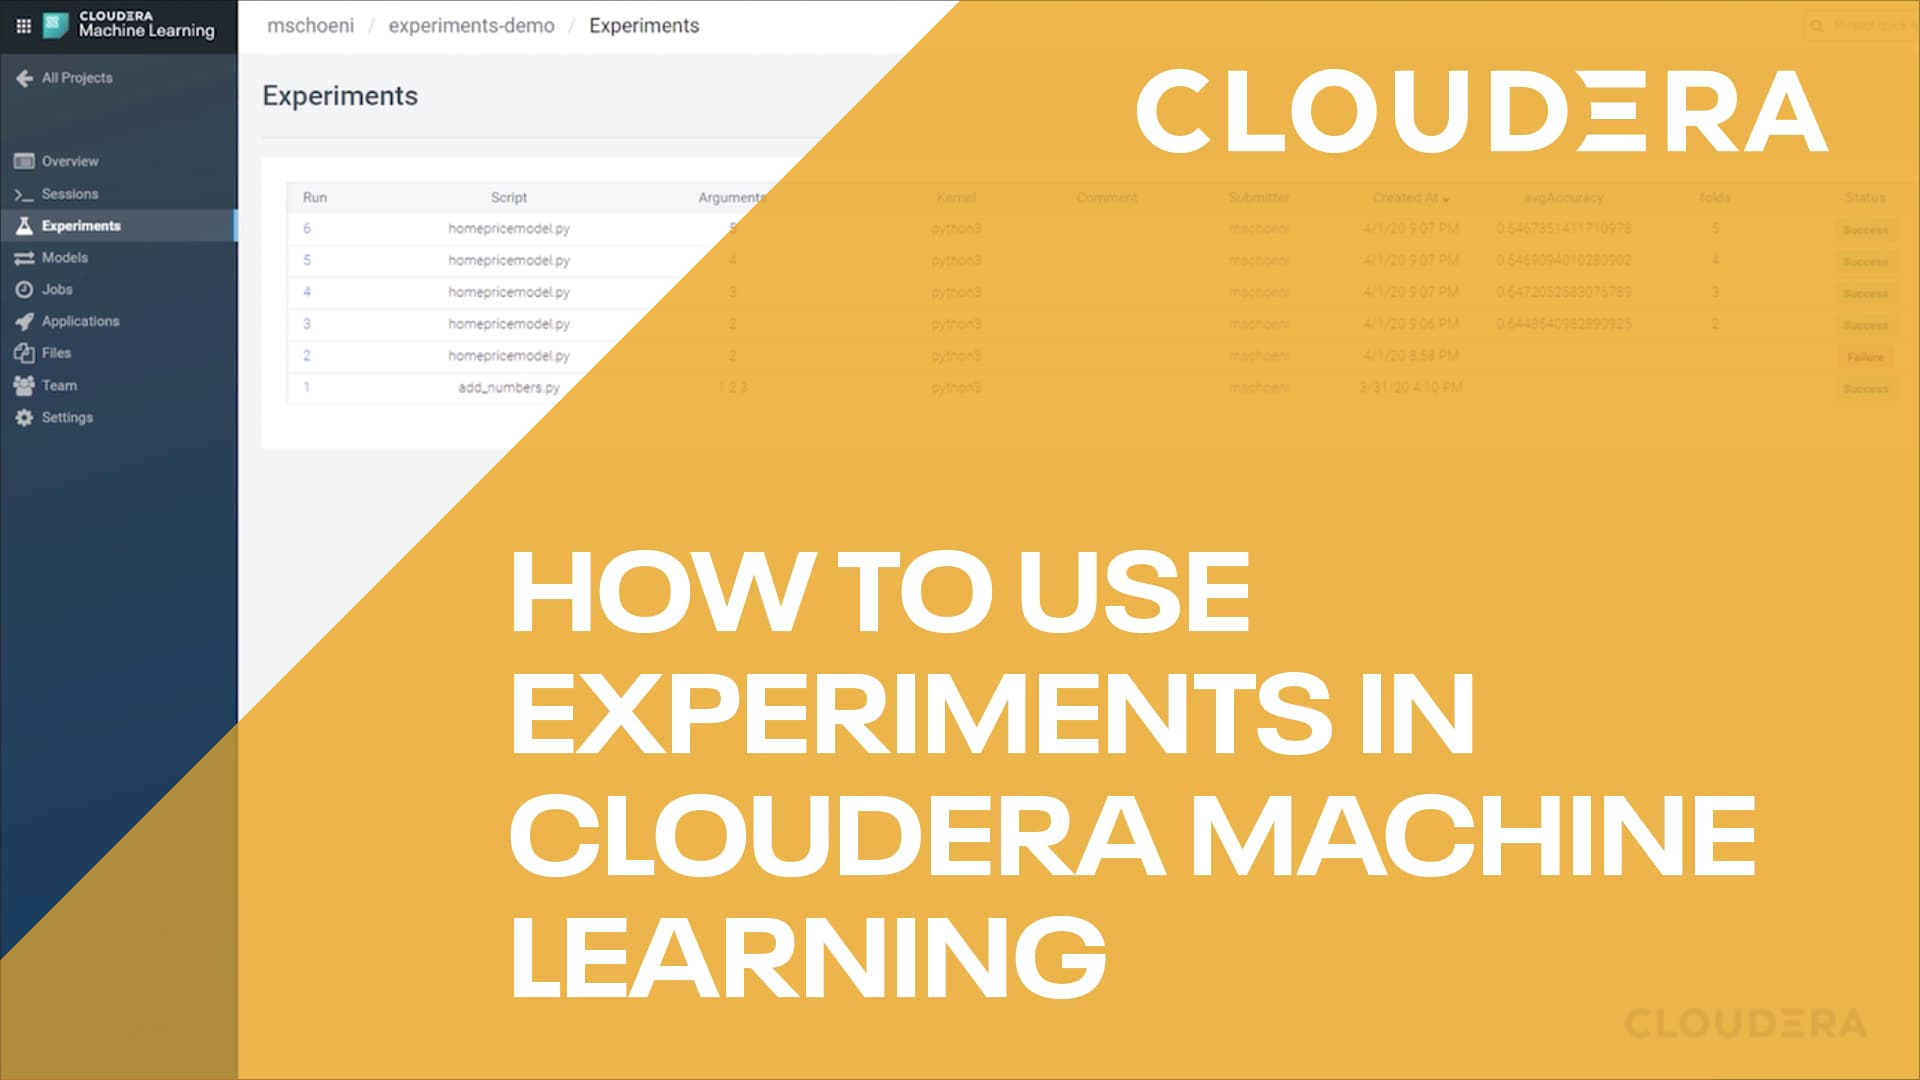 How to use Experiments in Cloudera Machine Learning